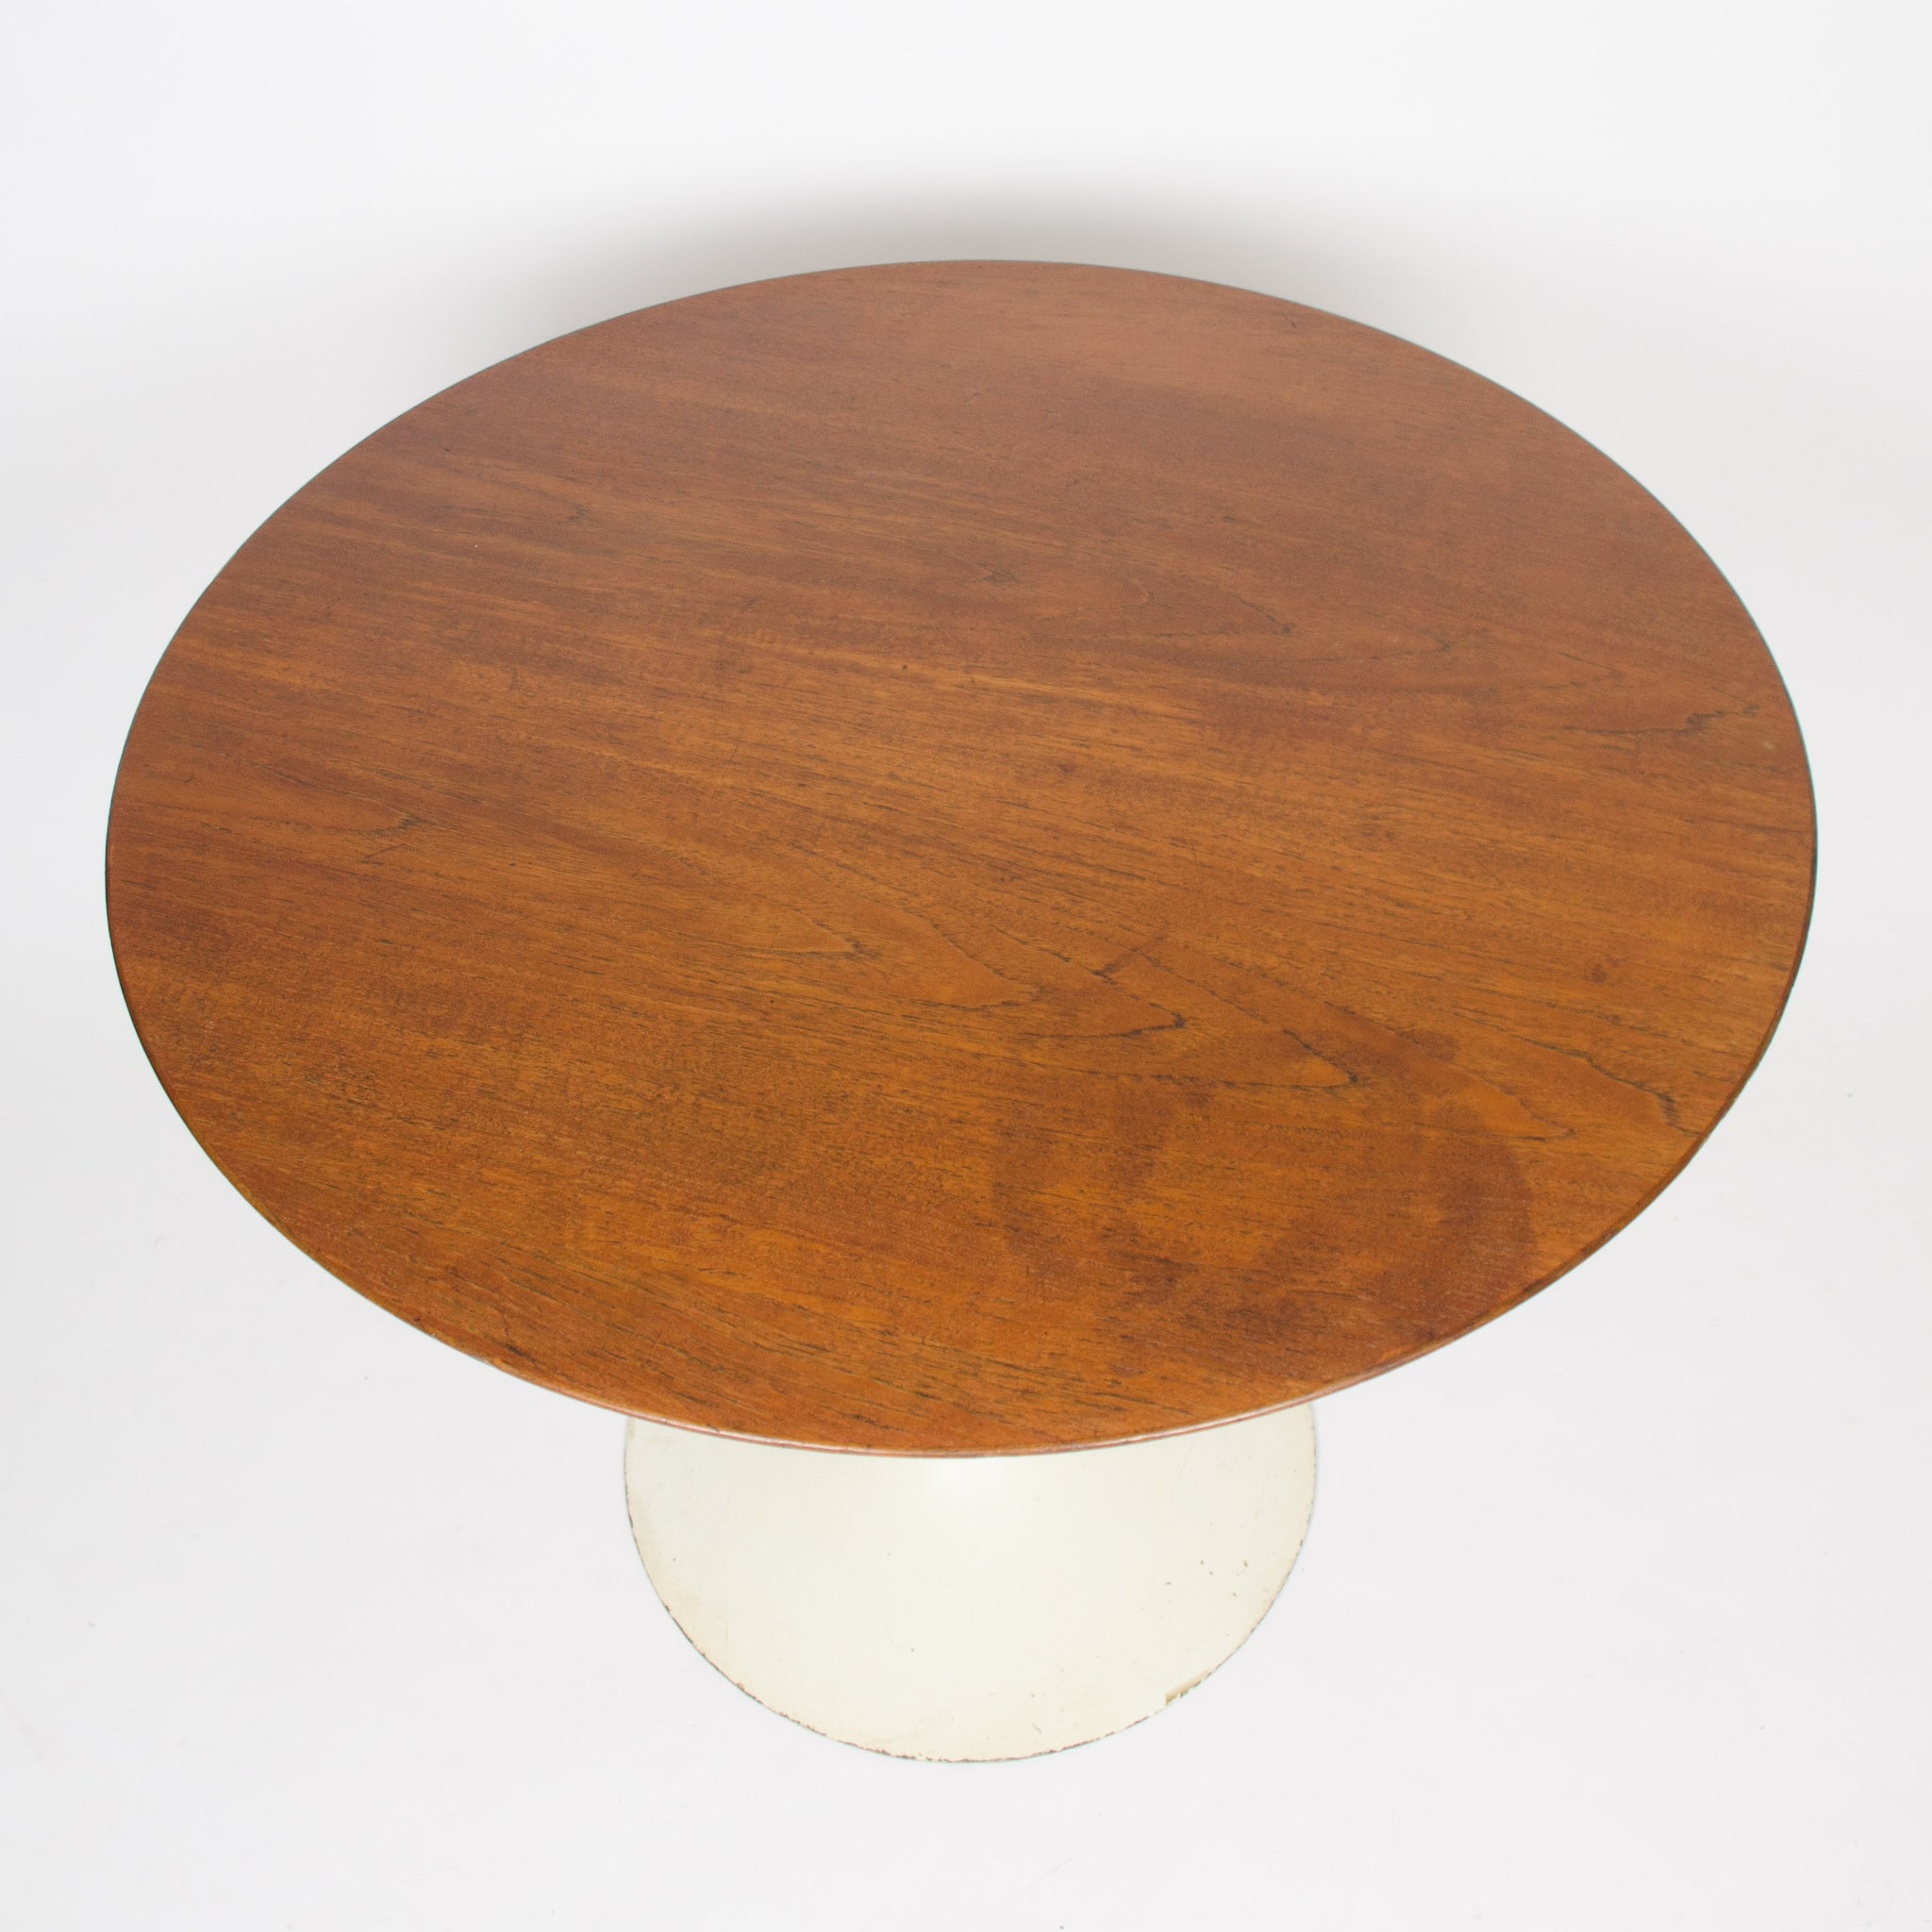 SOLD 1960's Eero Saarinen For Knoll 36 Inch Walnut Tulip Cafe / Dining Table Marked